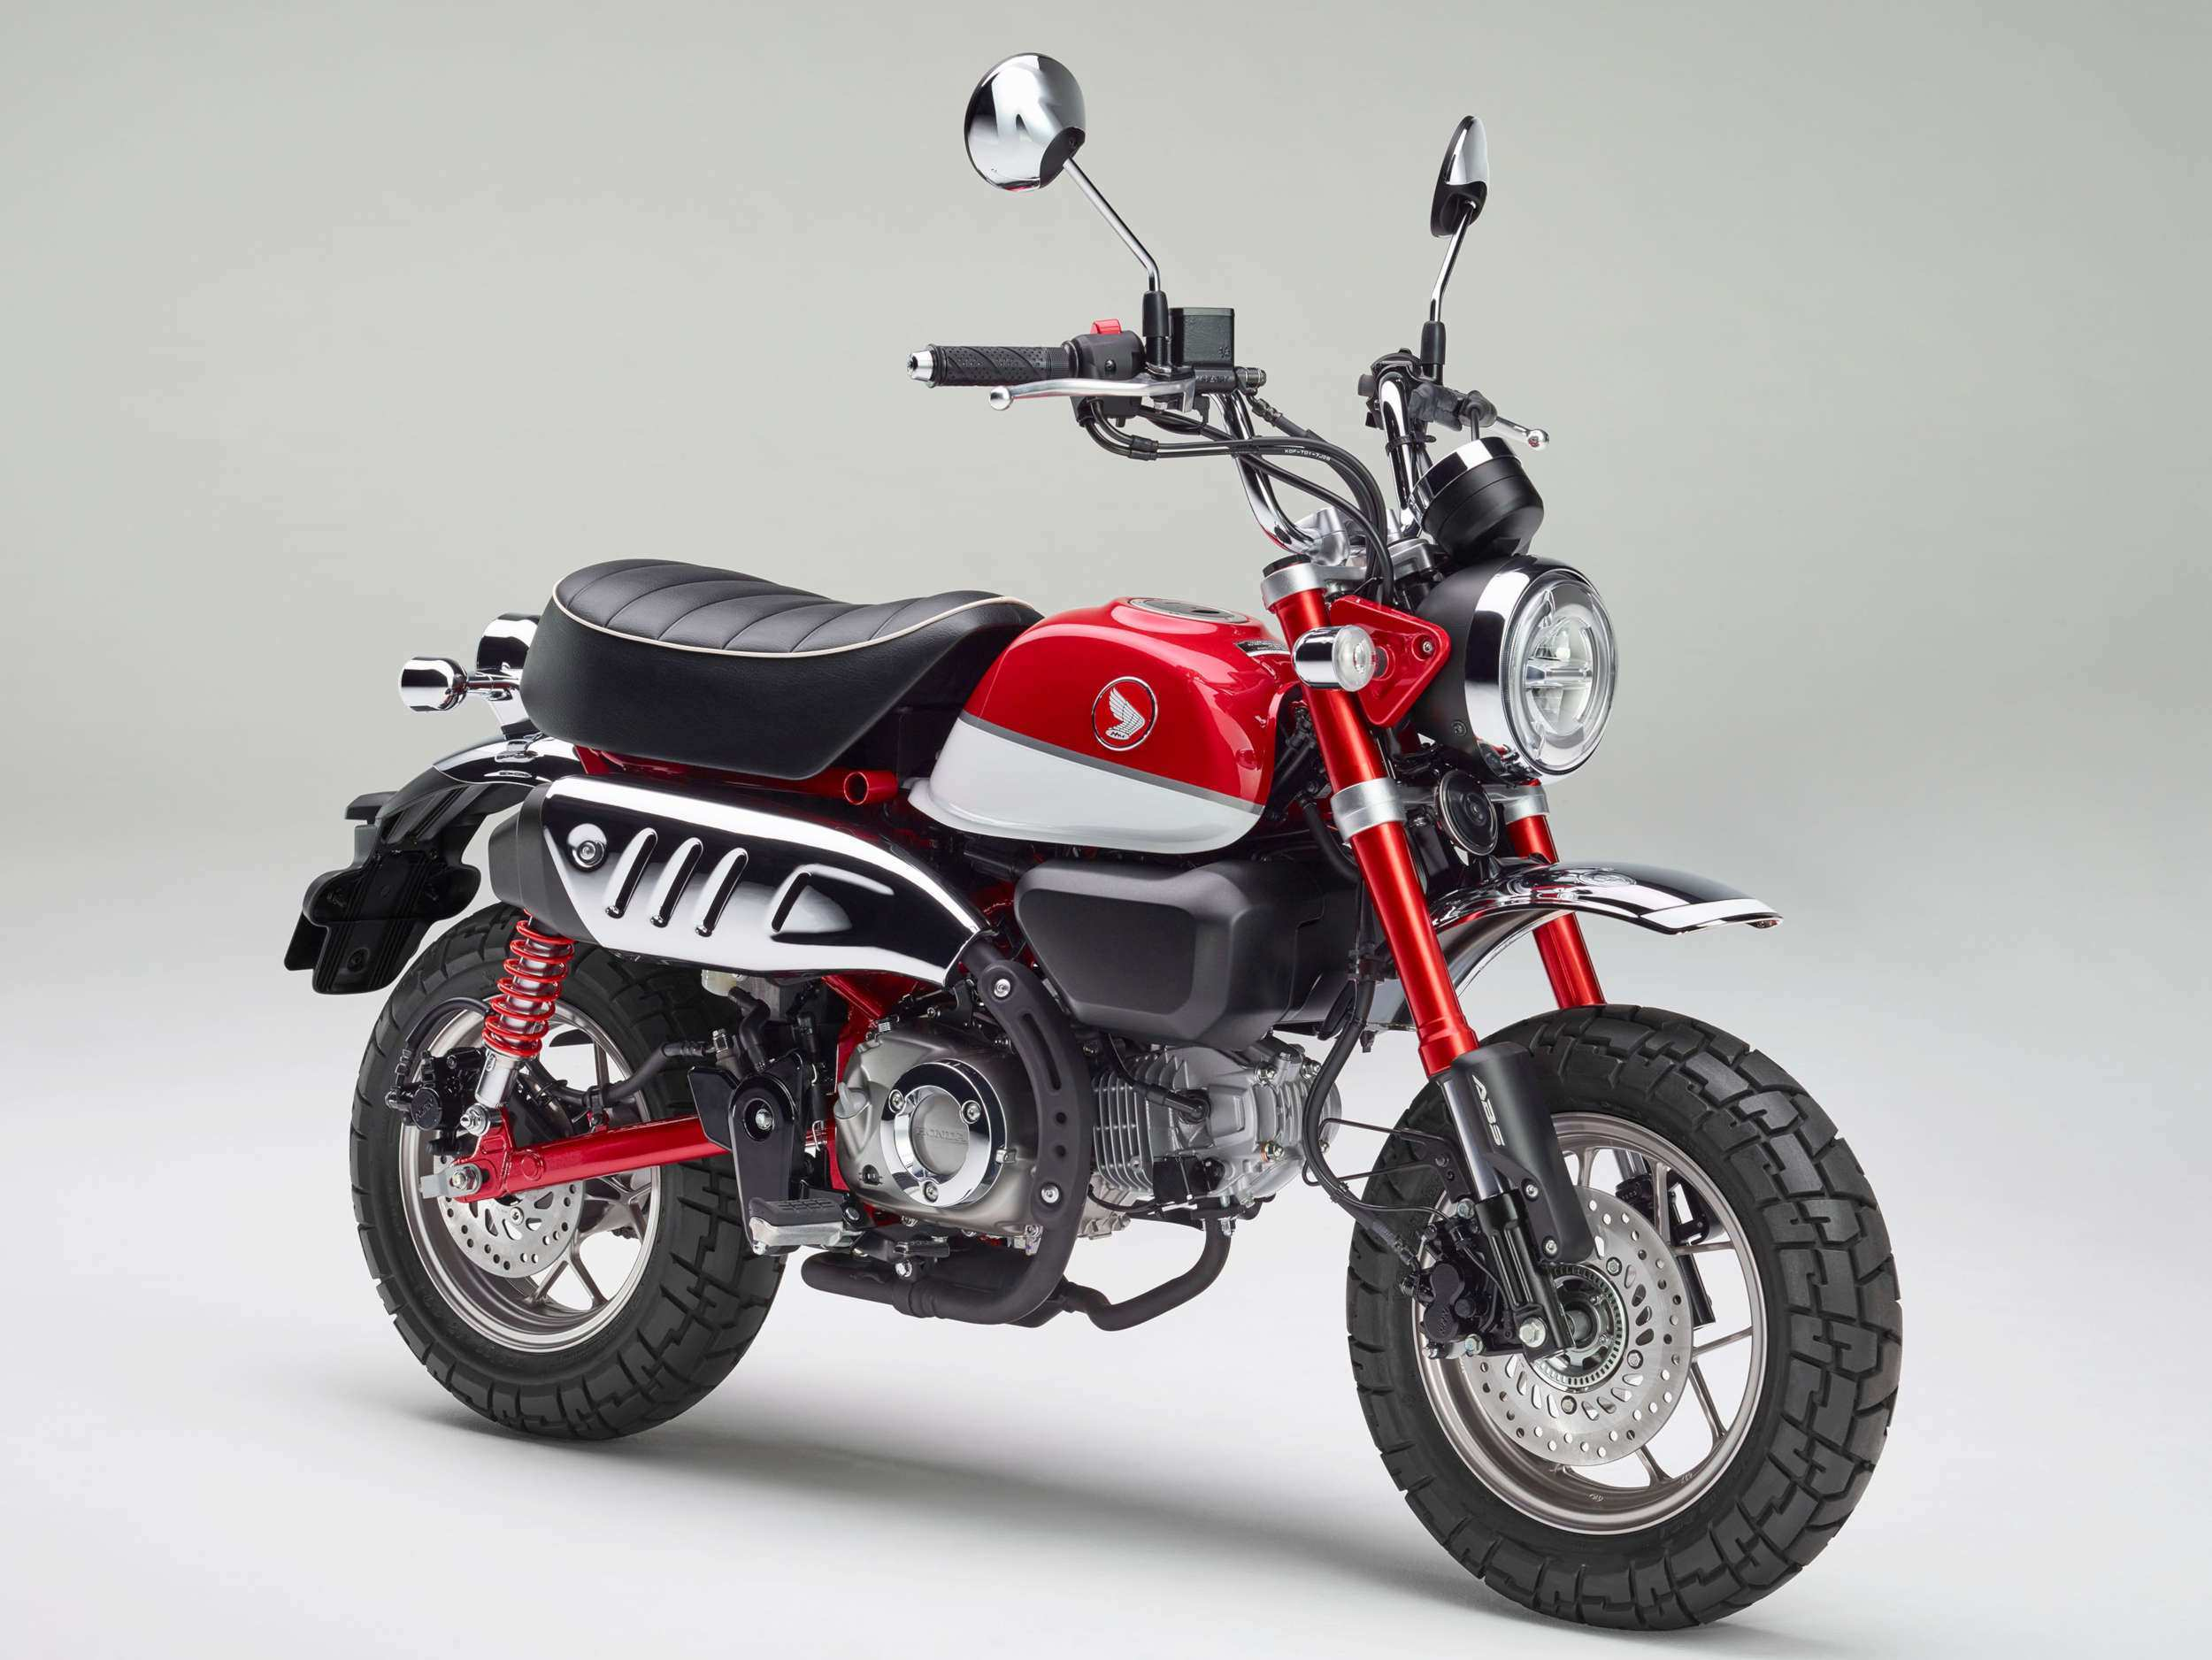 57 All New 2019 Honda Super Cub Top Speed Price And Review